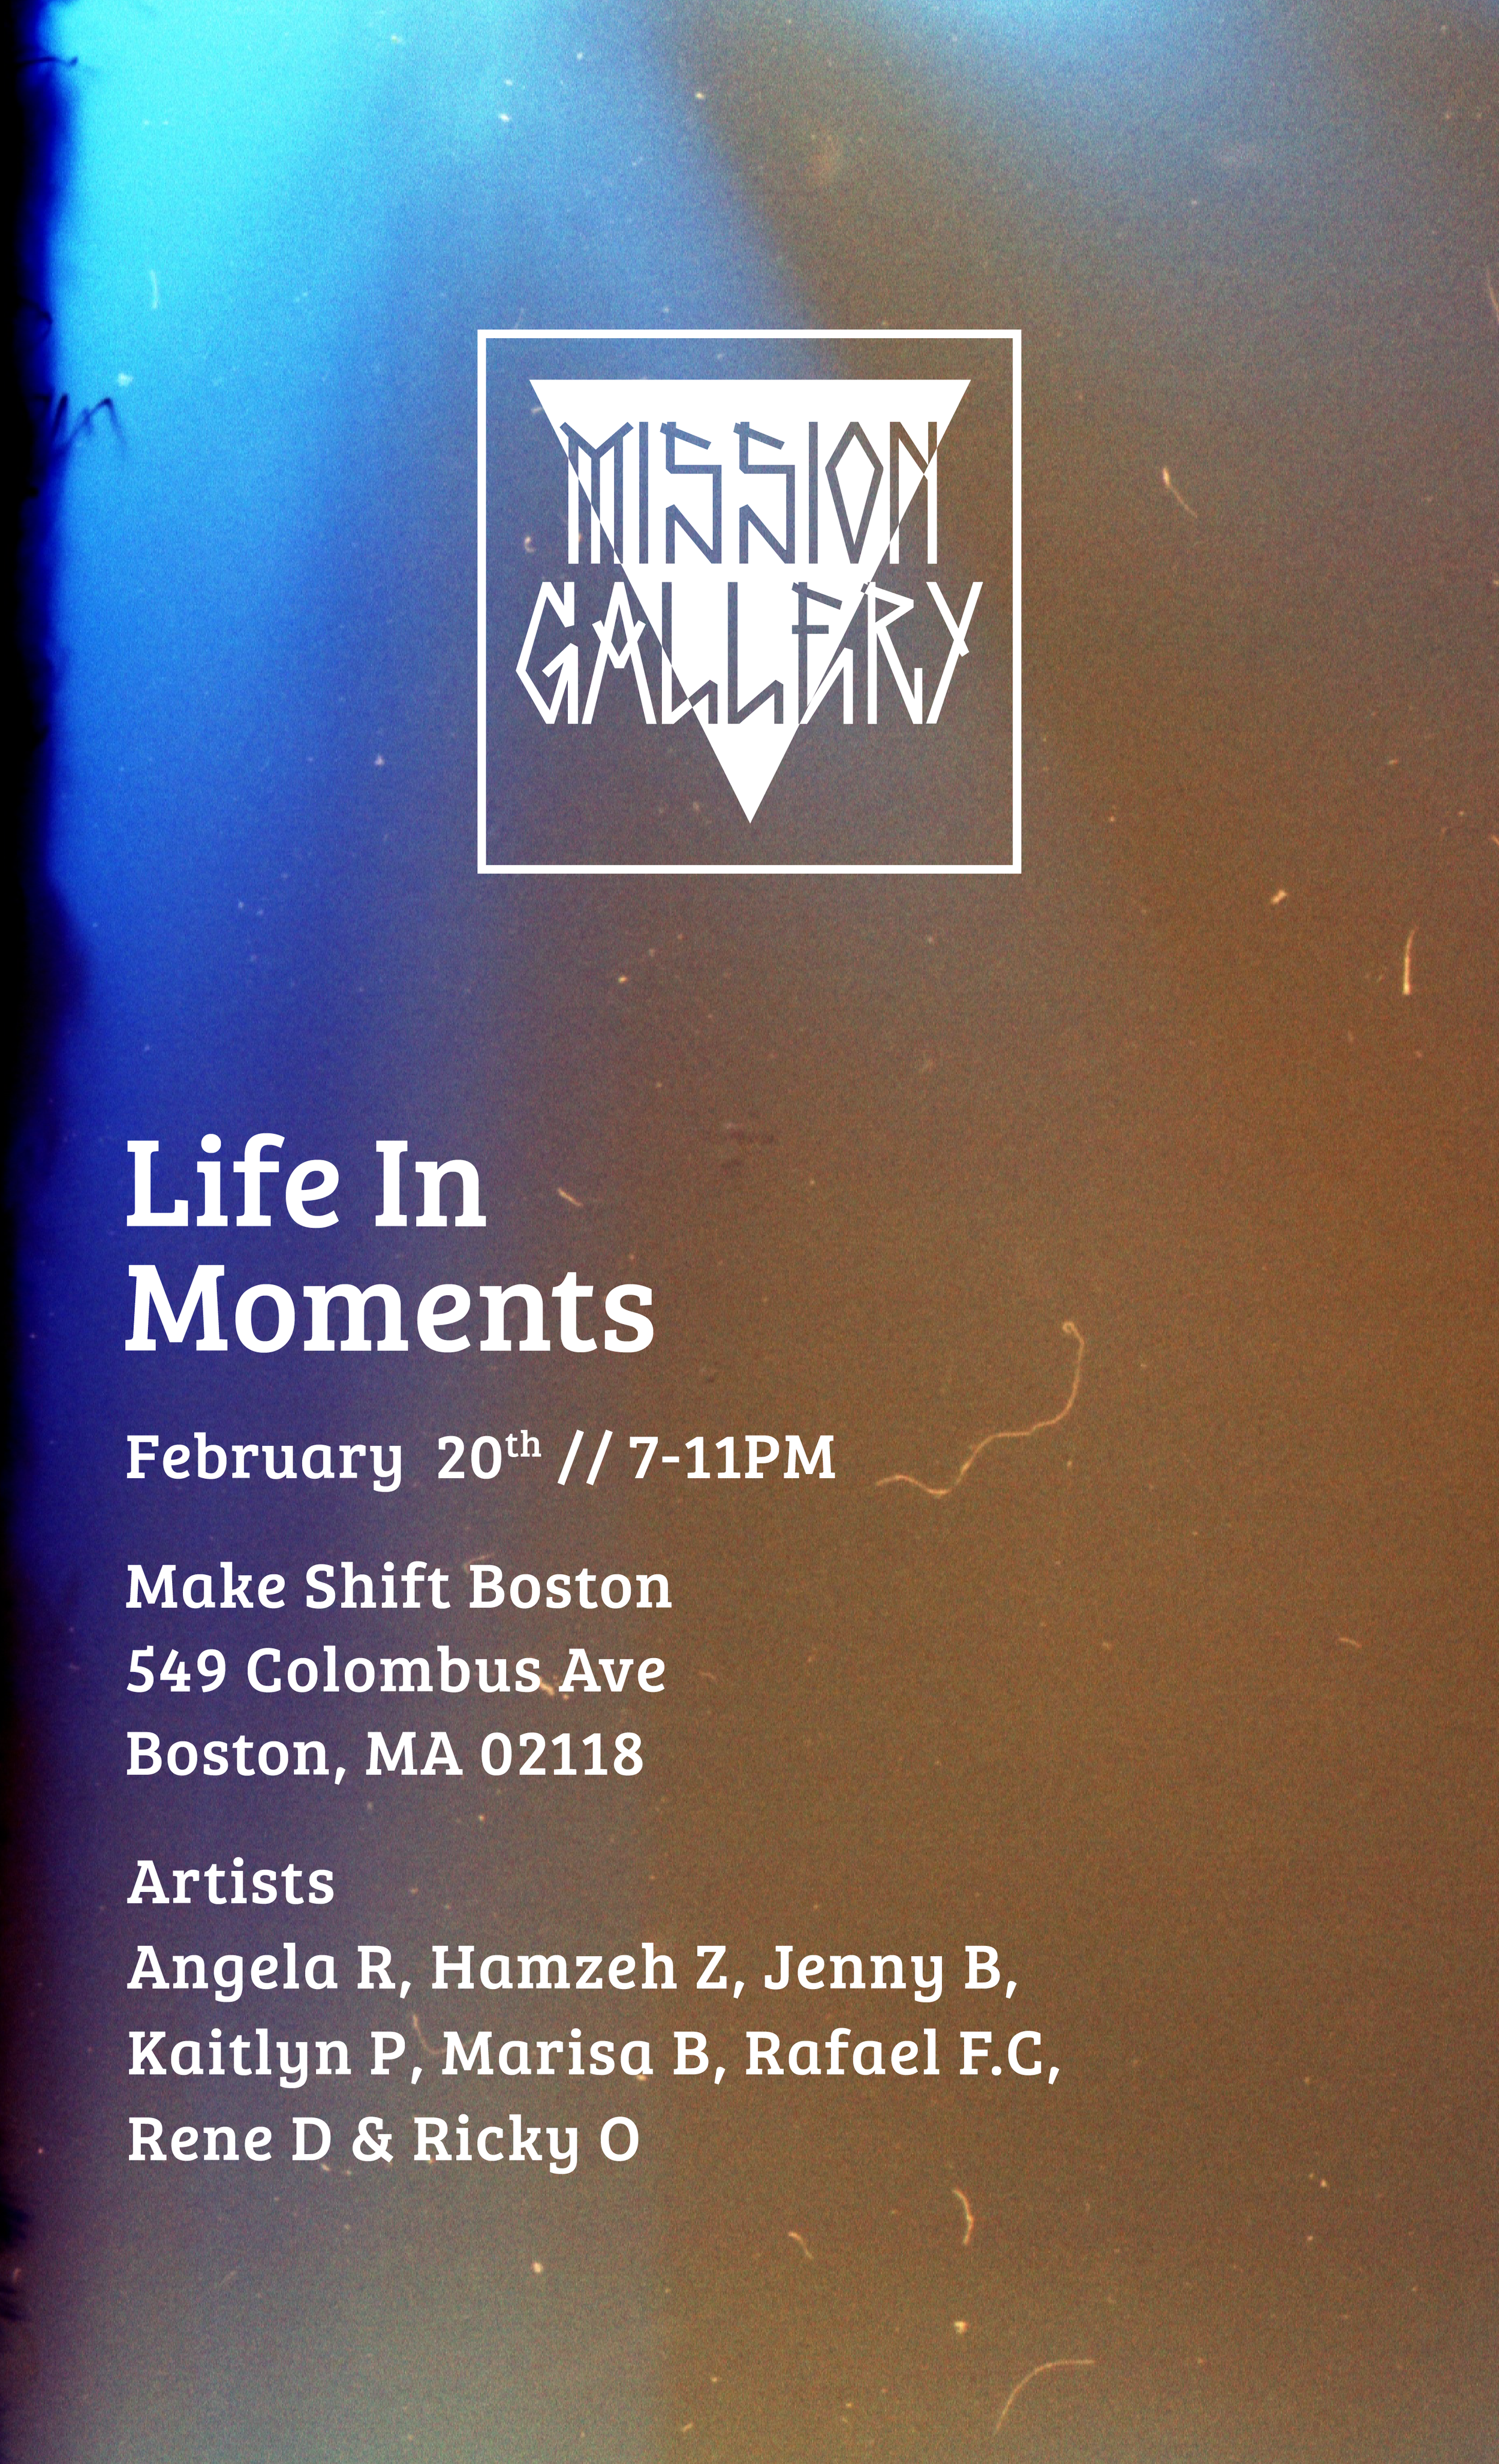 MG Life In Moments flyer.png